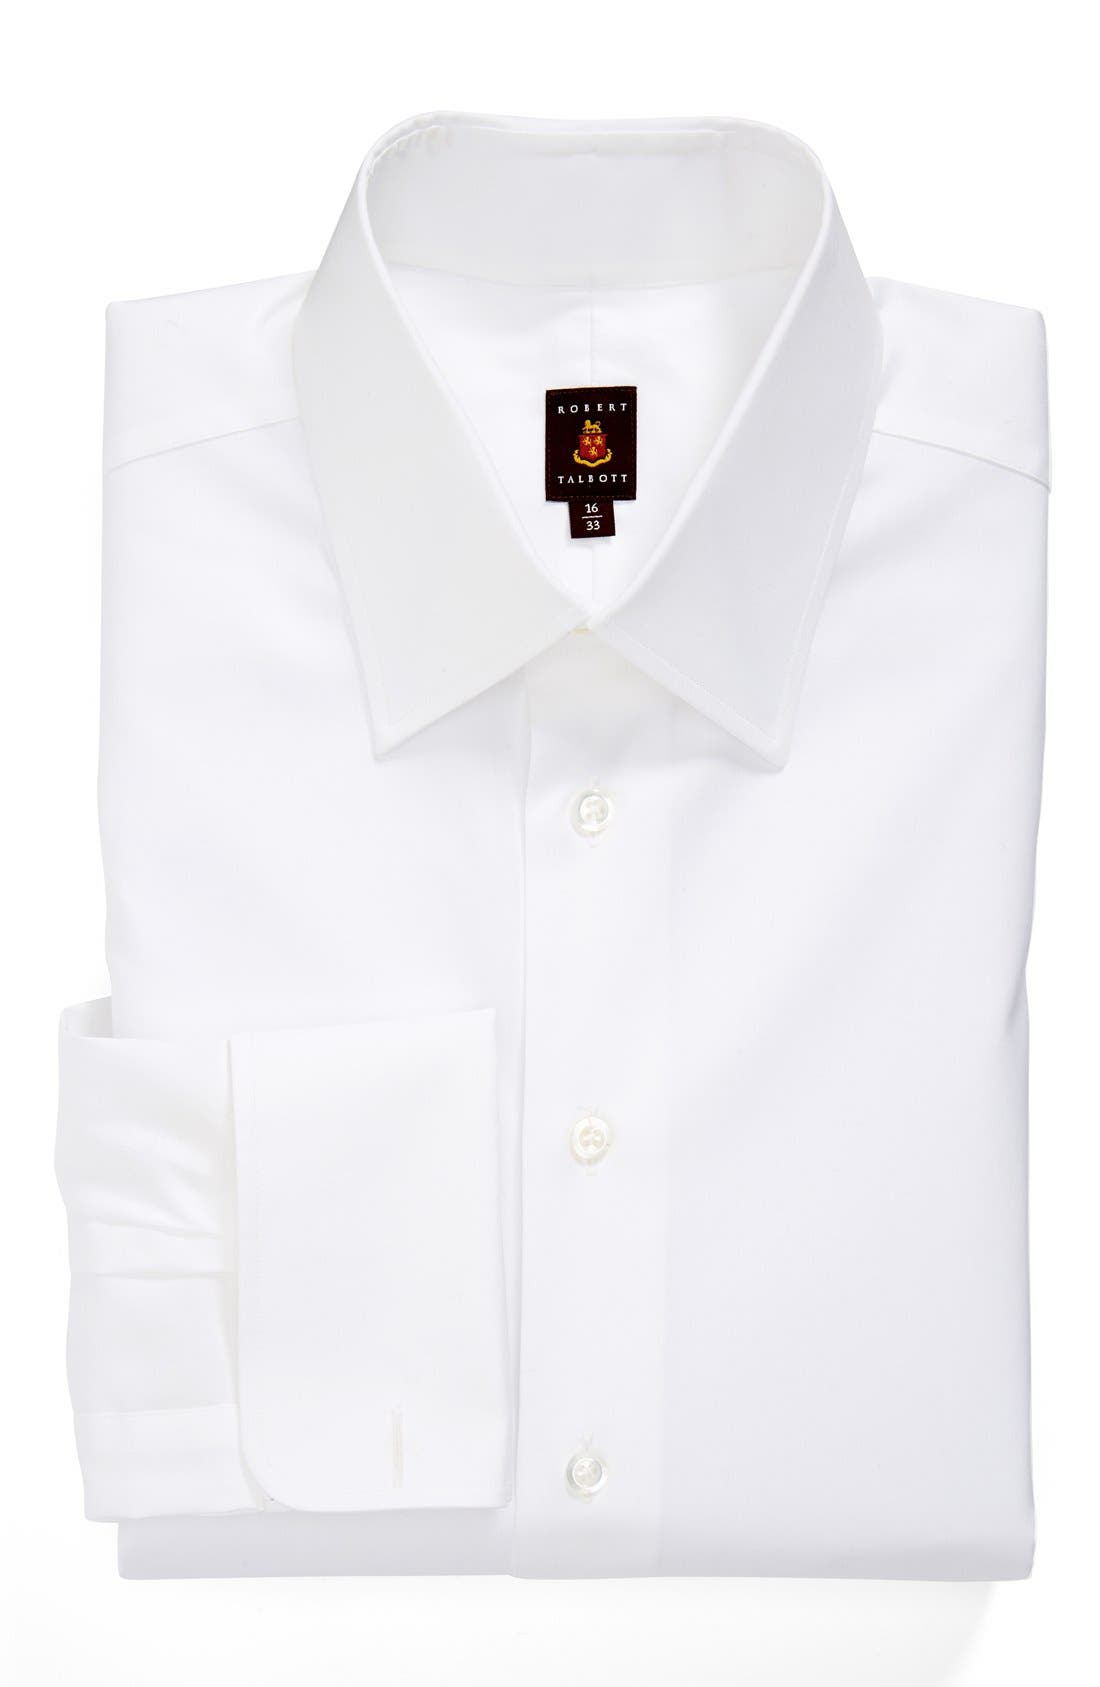 Alternate Image 1 Selected - Robert Talbott Classic Fit Solid Dress Shirt